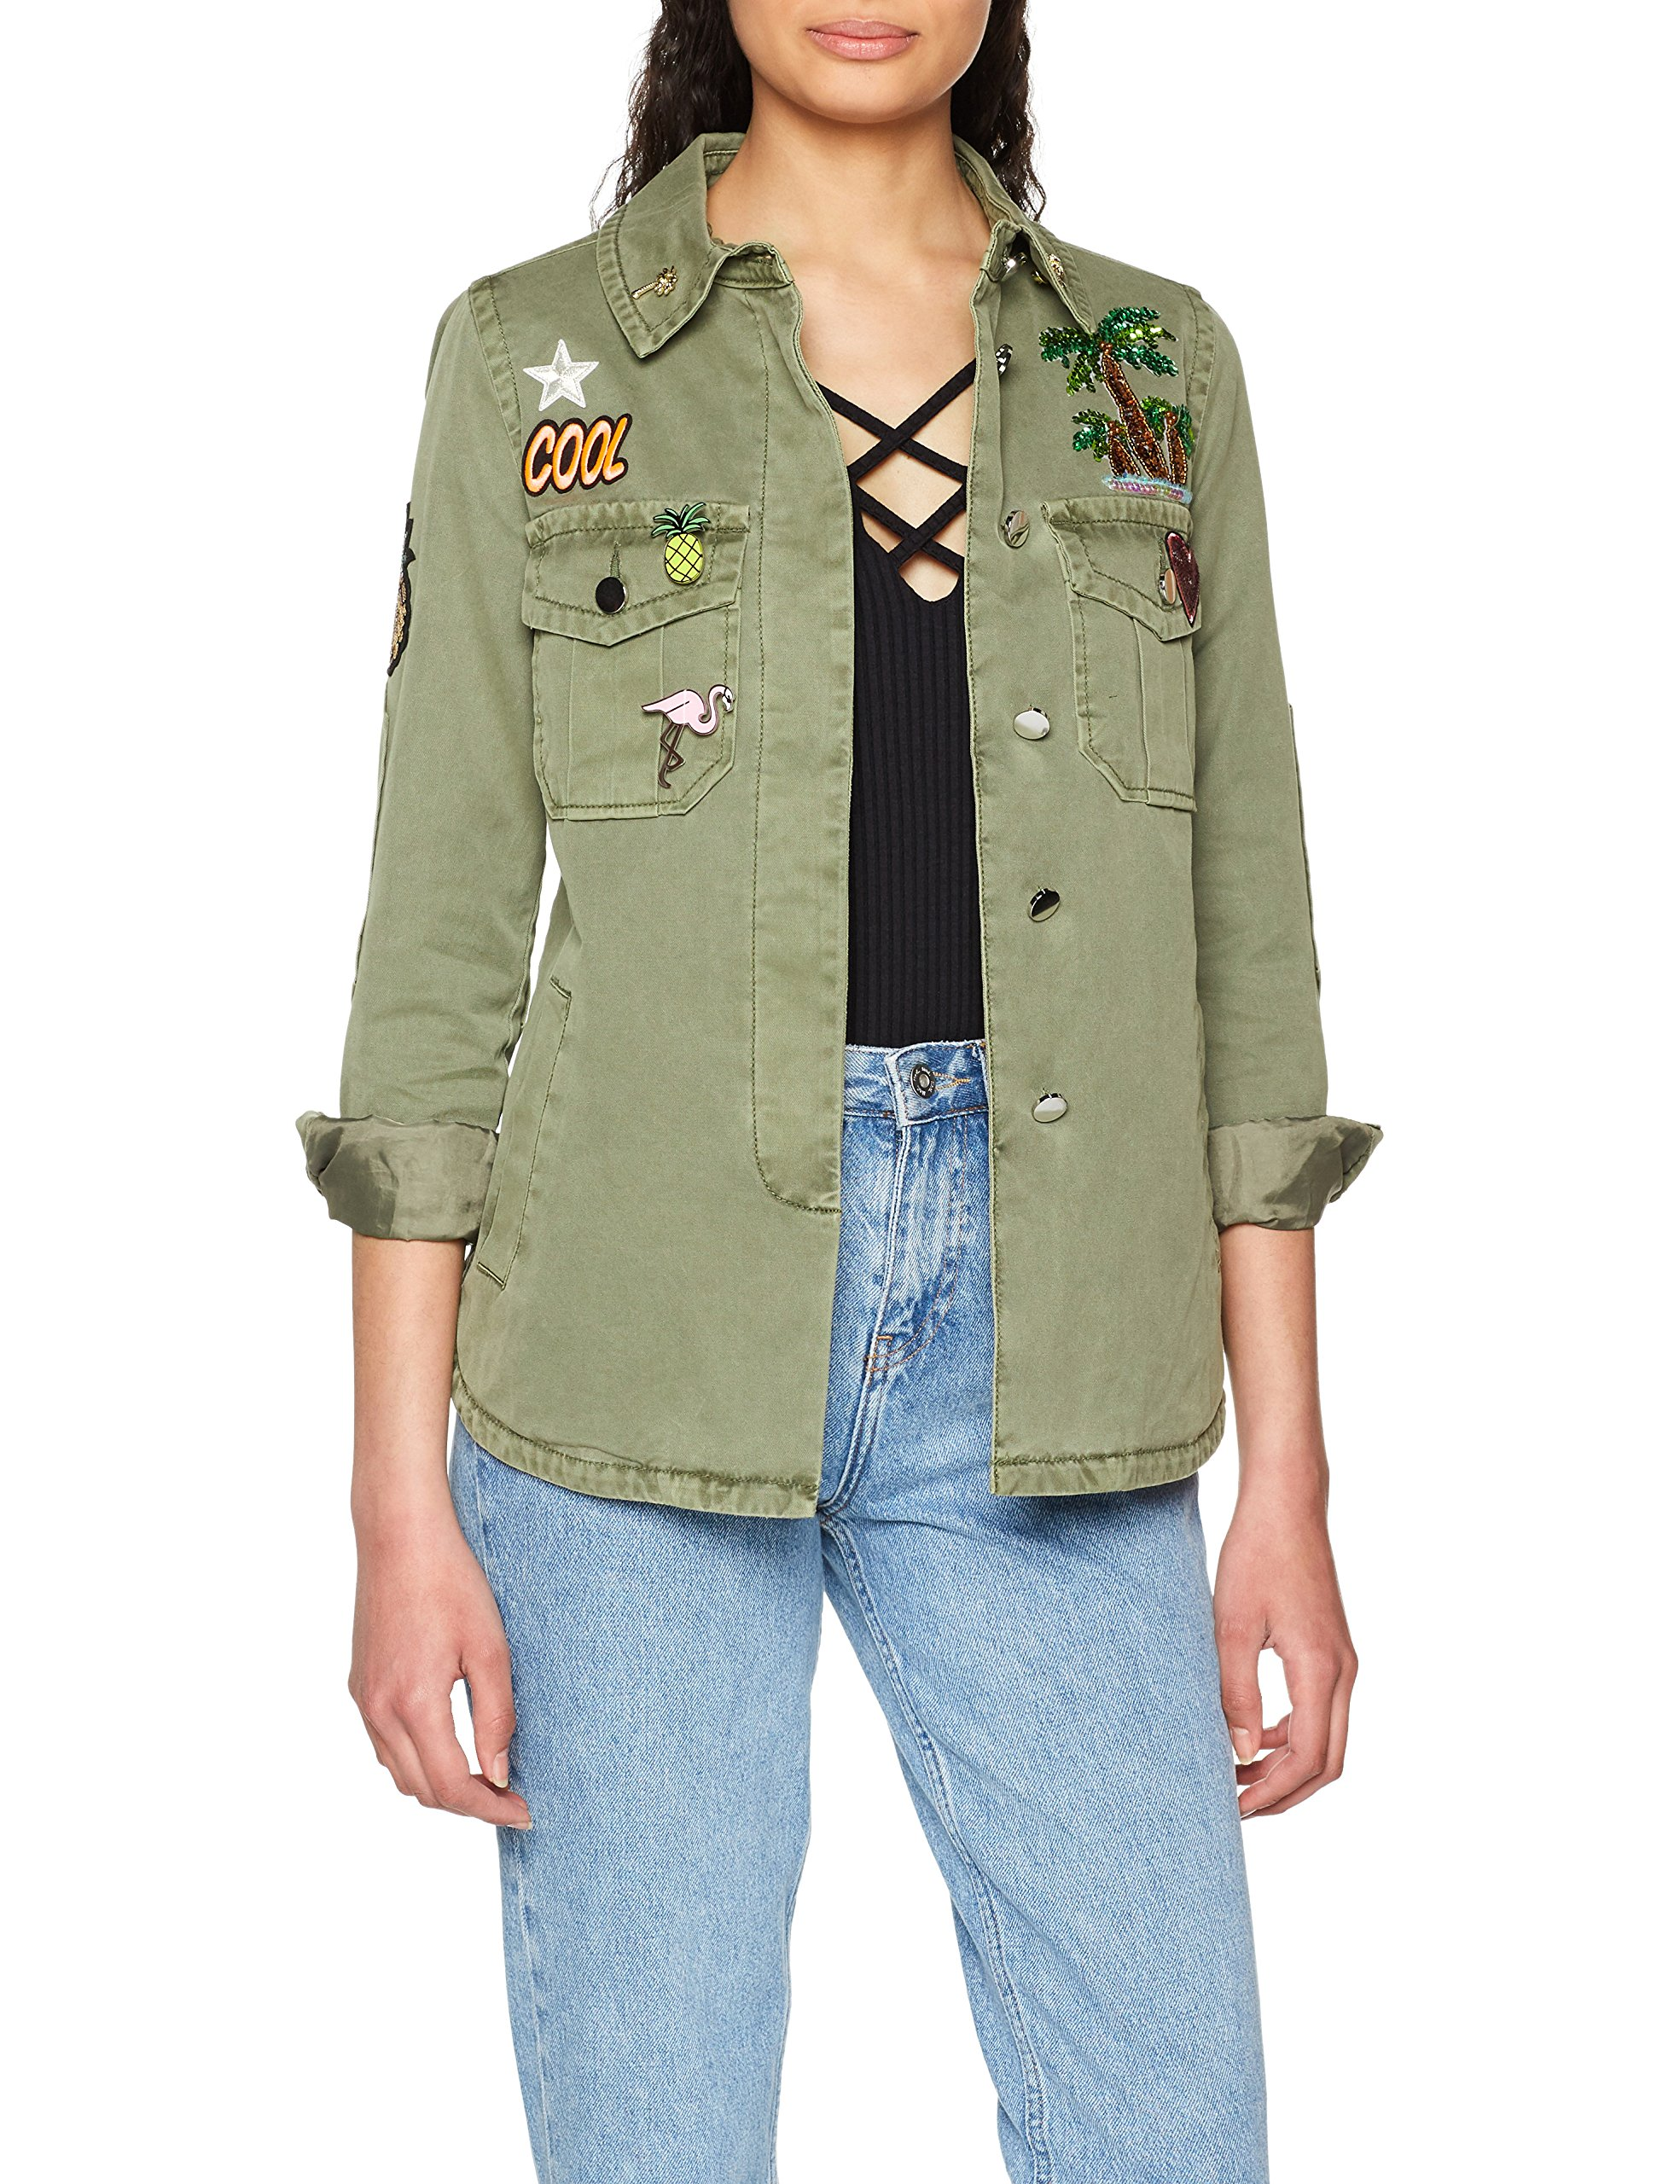 Patches amp;royal With And ParkaGrünspring Khaki Rich Pins 47440 Femme Jacket zMVqUpSG